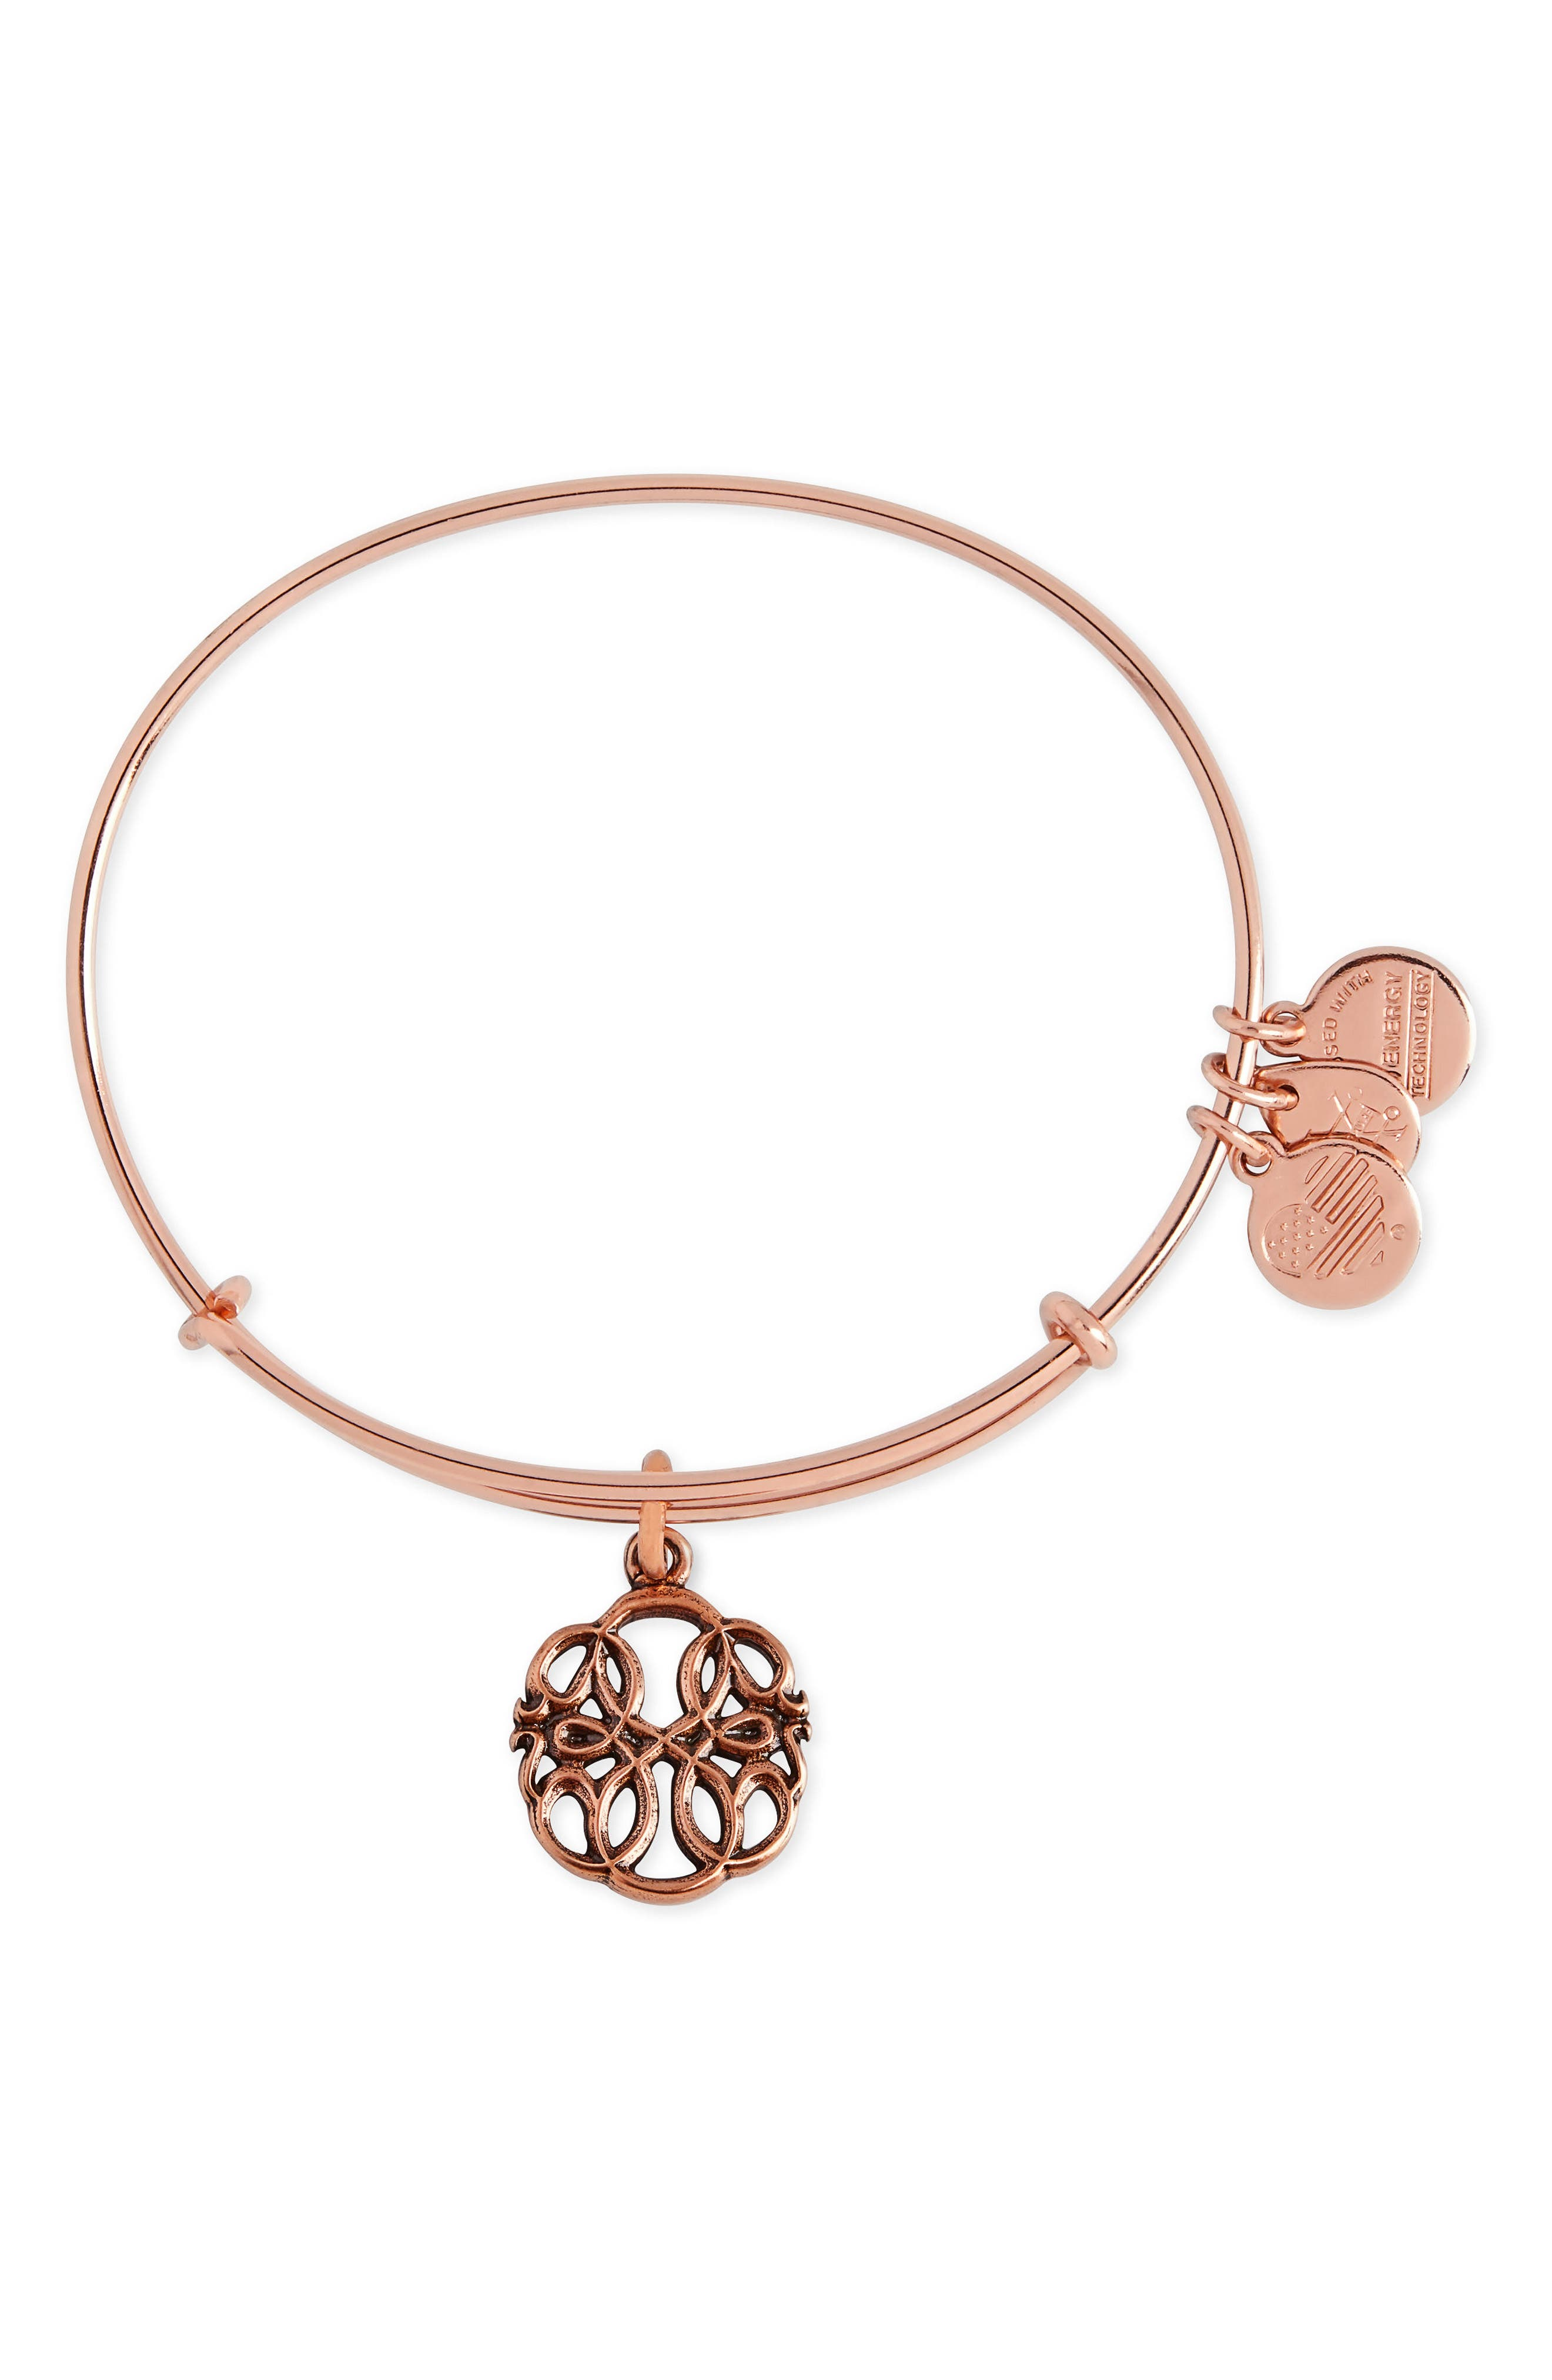 Path of Life Adjustable Wire Bangle,                             Main thumbnail 1, color,                             Rose Gold